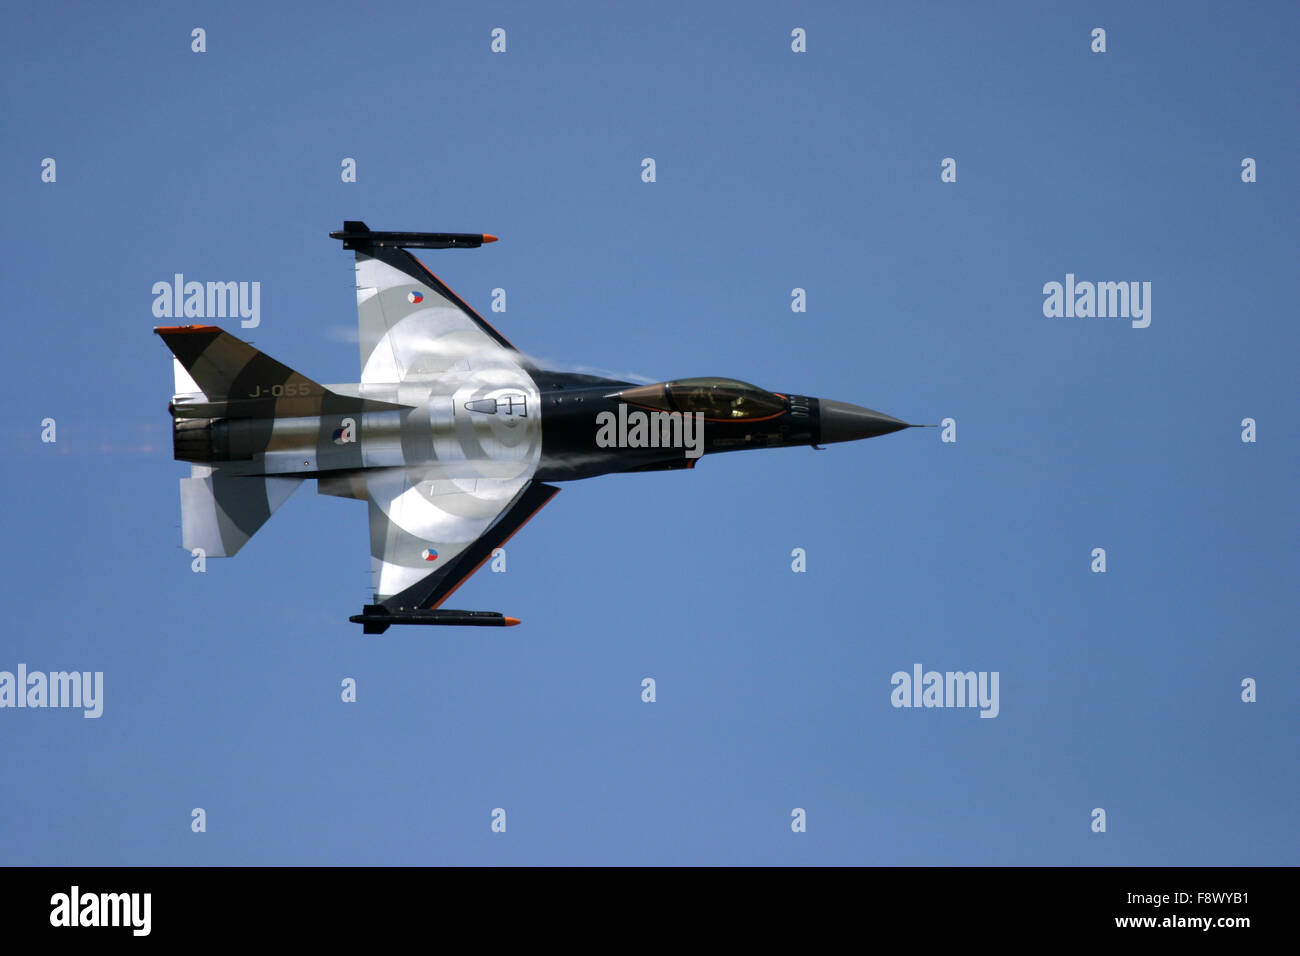 General Dynamics F-16 Fighting Falcon at UK air show. - Stock Image